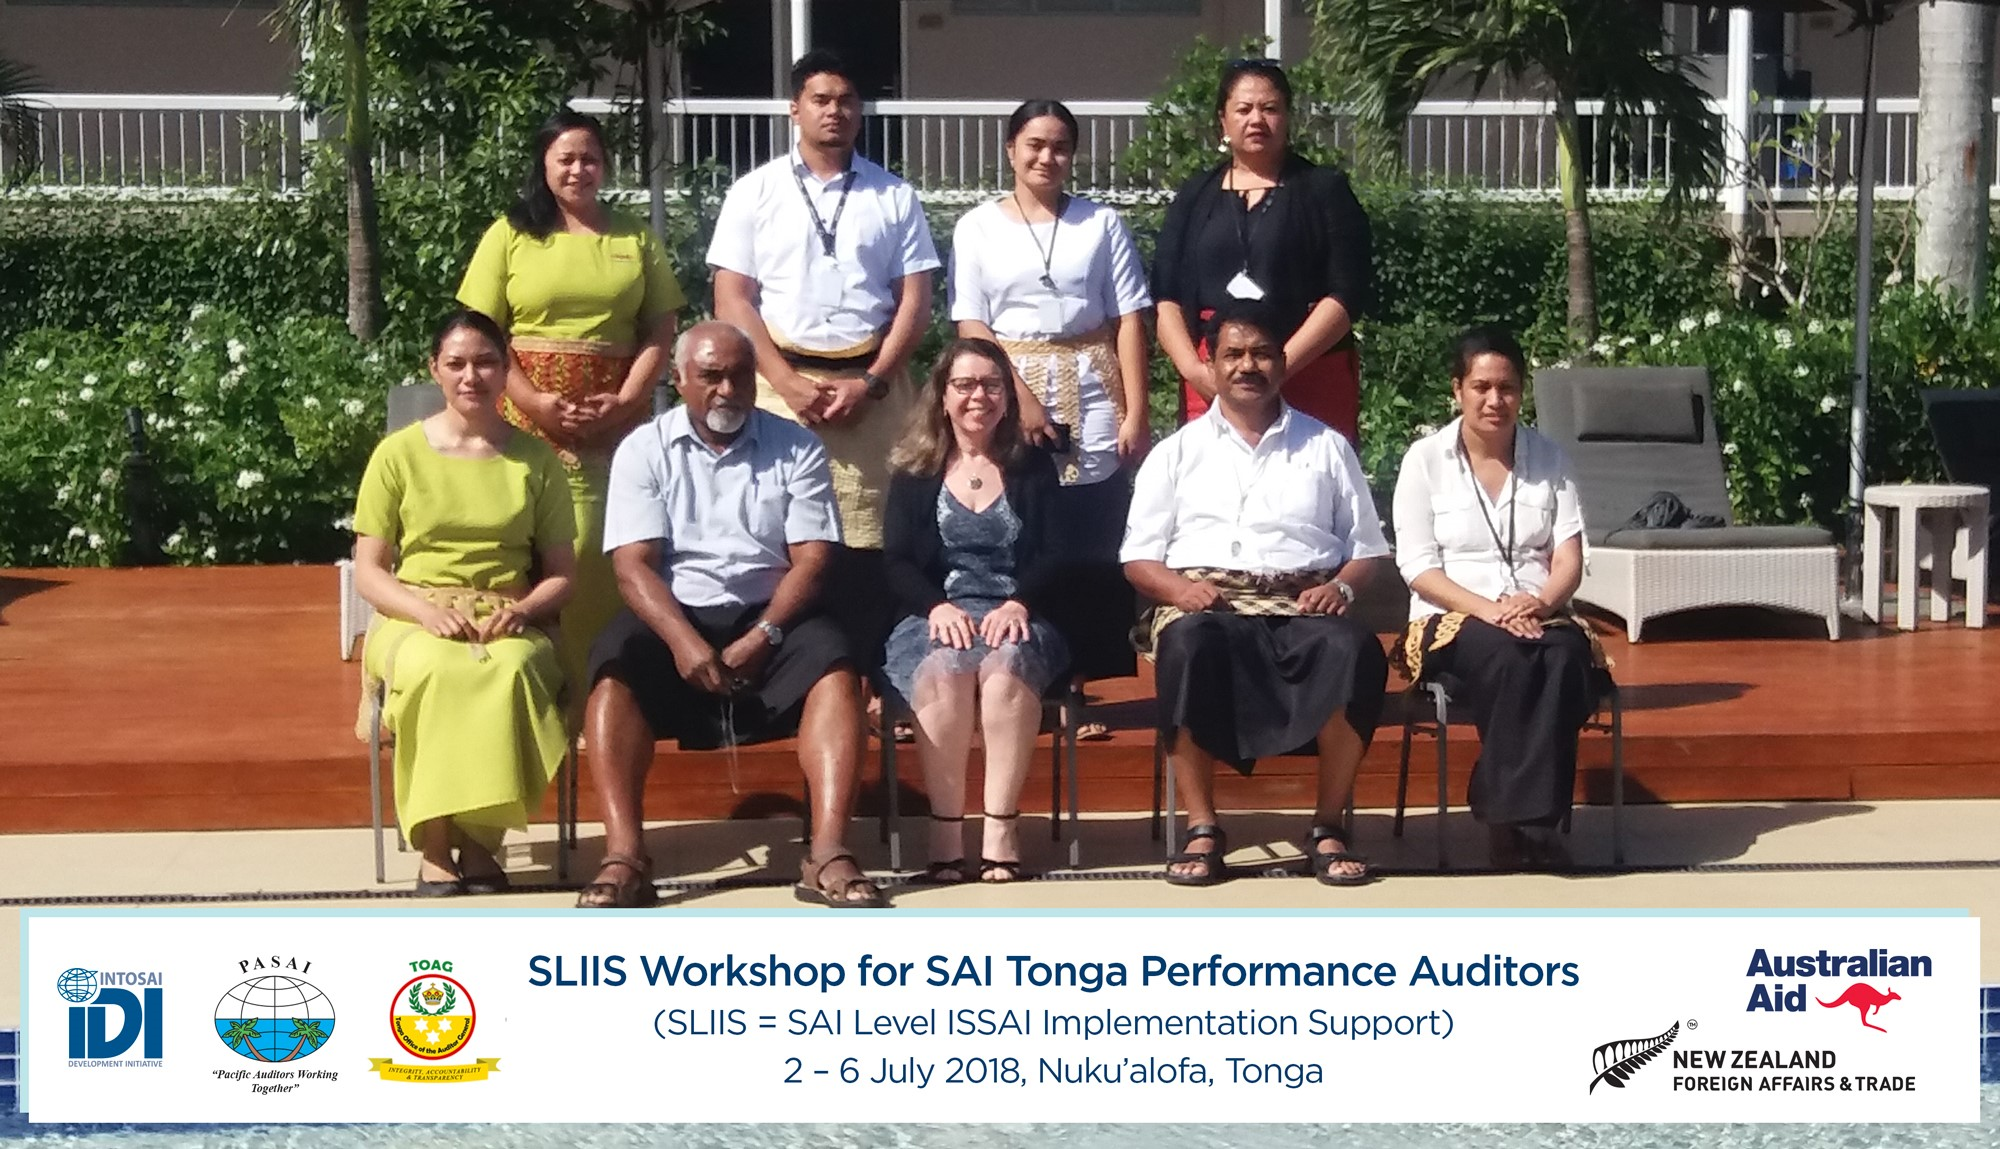 The TOAG workshop participants with the Facilitators and the Tonga Auditor-General.